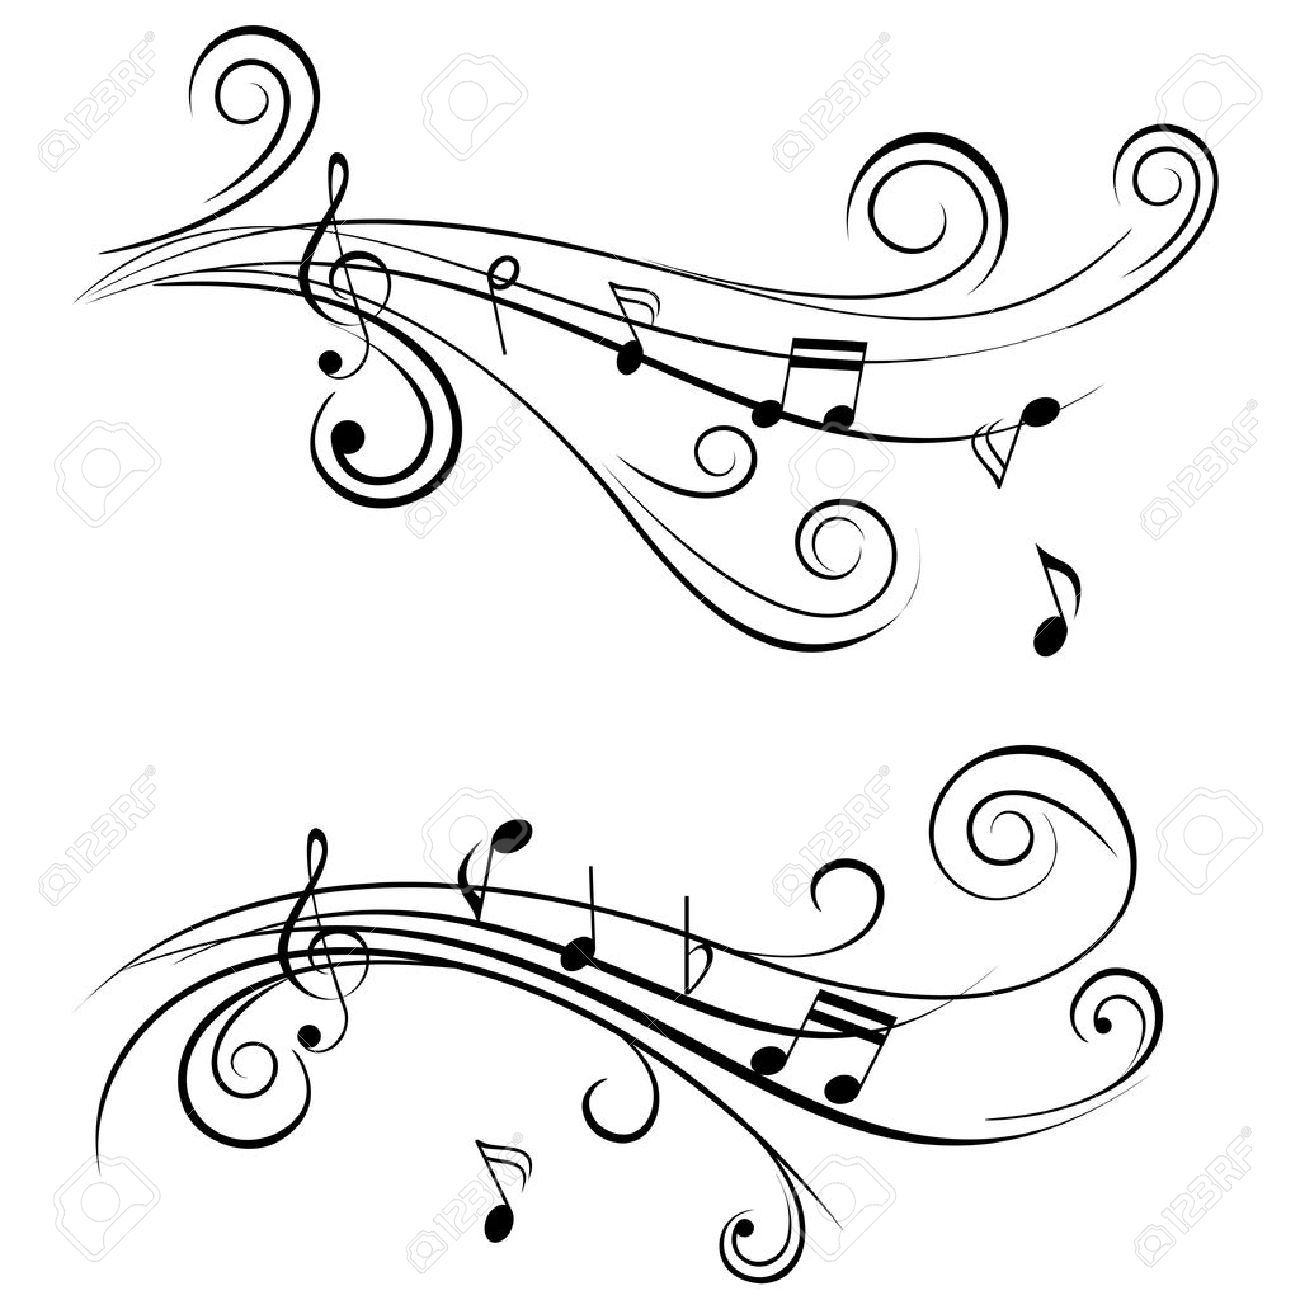 Ornamental music notes with swirls on white background Stock Vector - 11092558